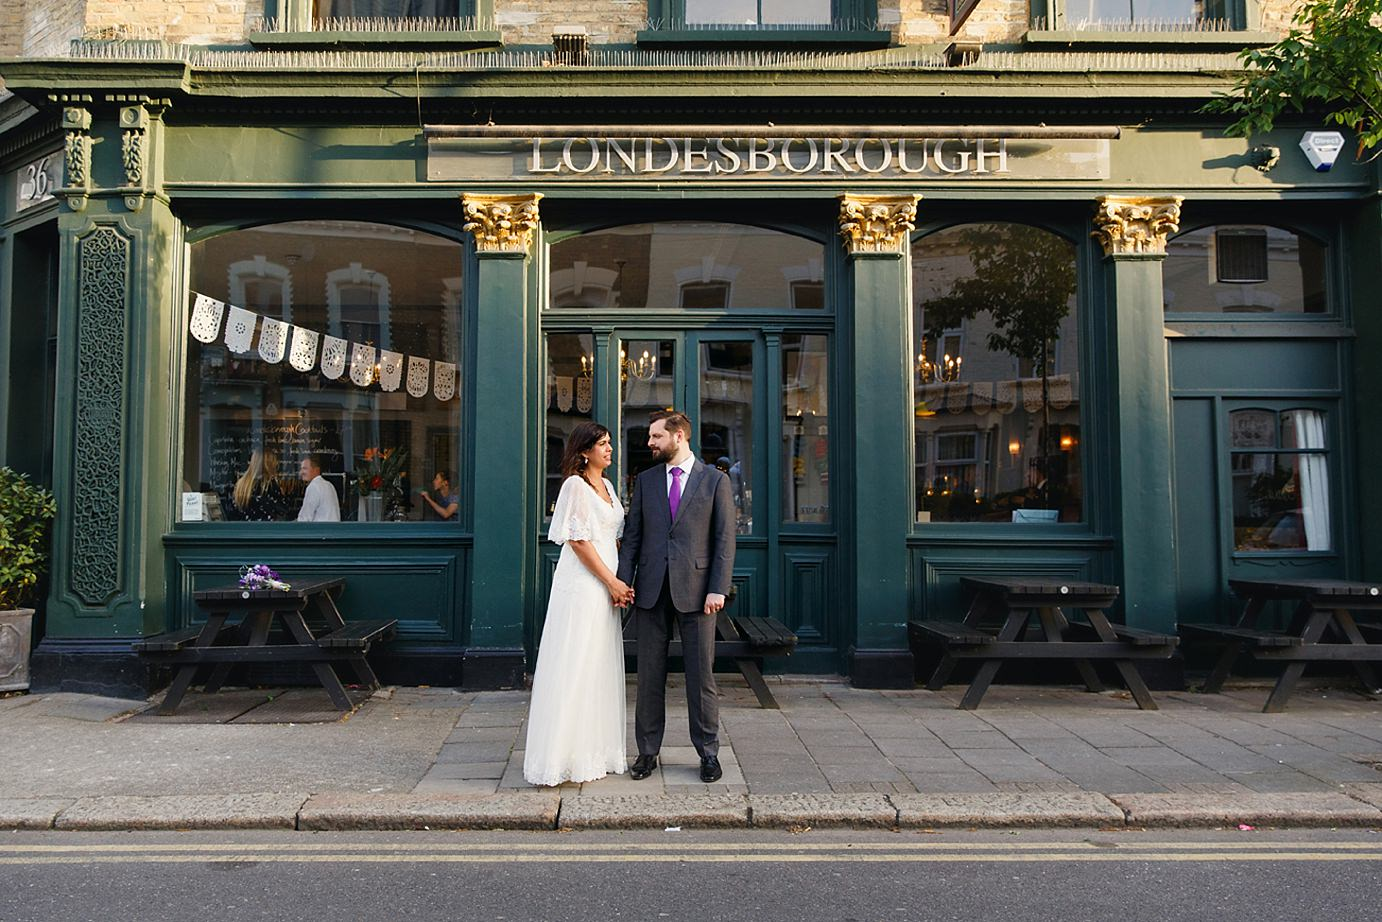 Londesborough pub wedding photography bride and groom outside the pub